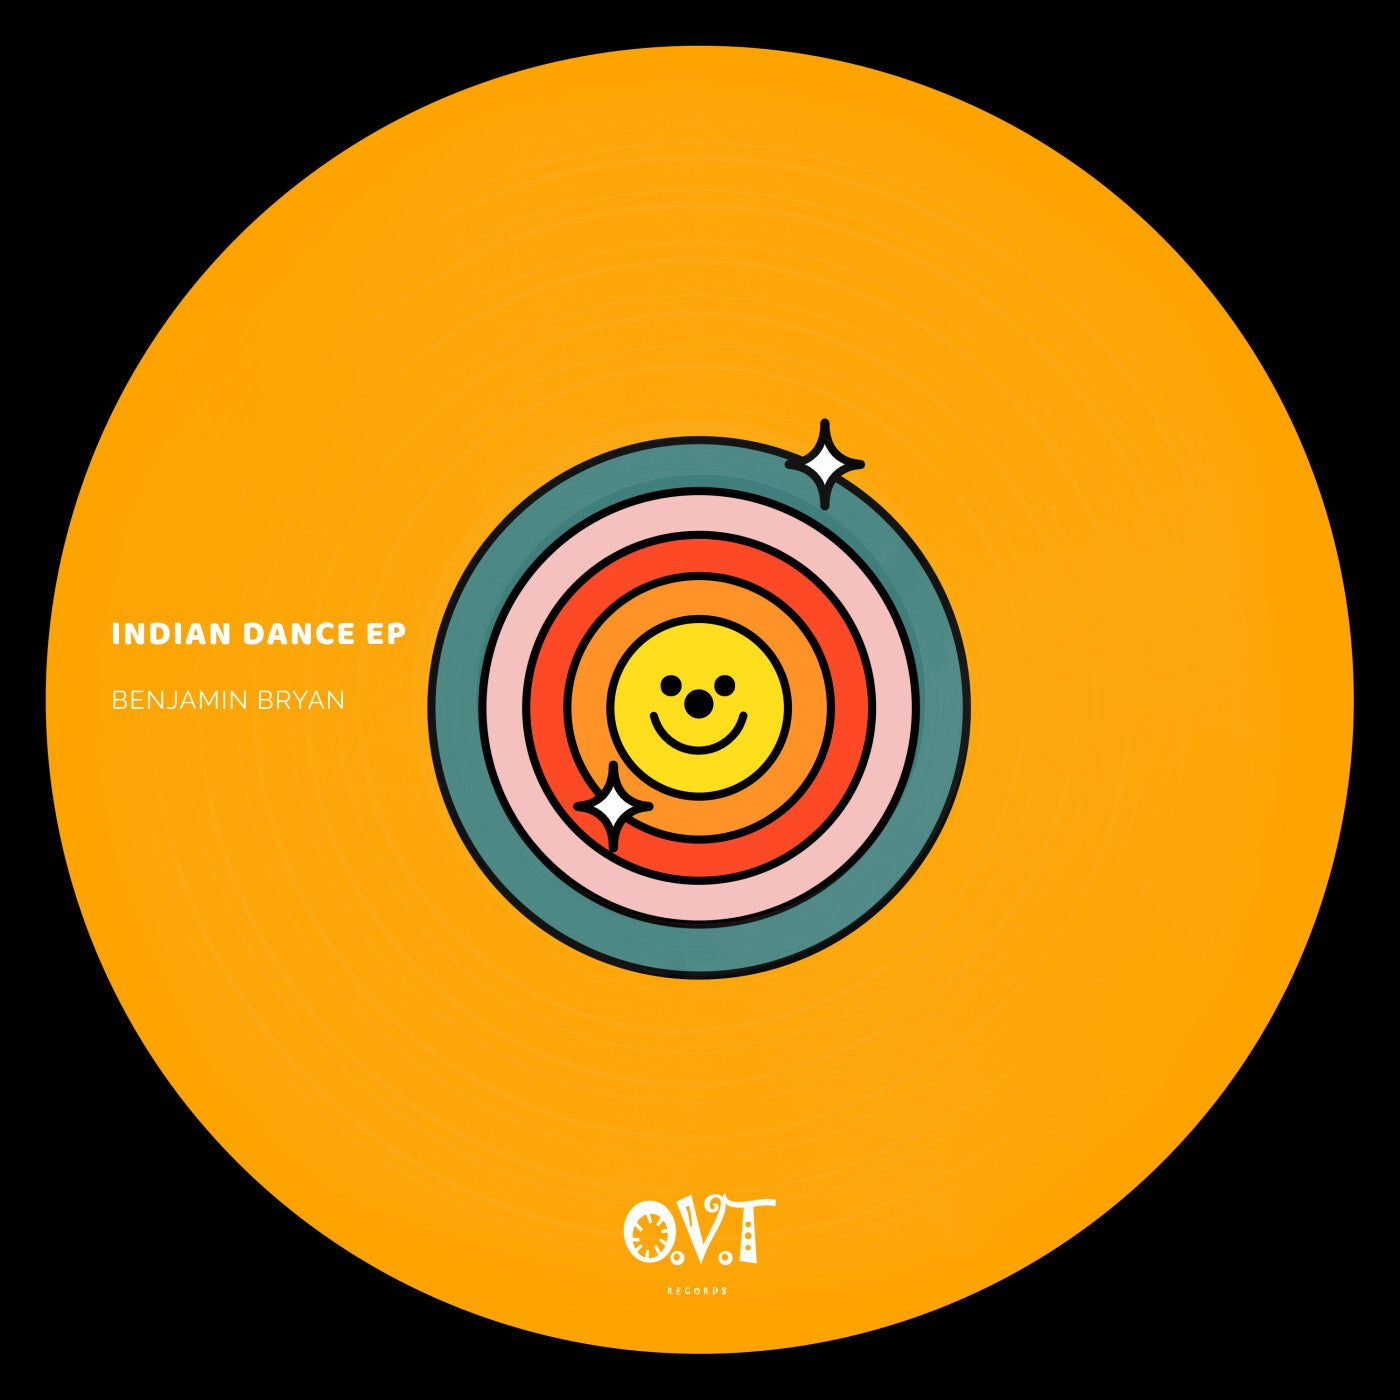 Indian Dance EP